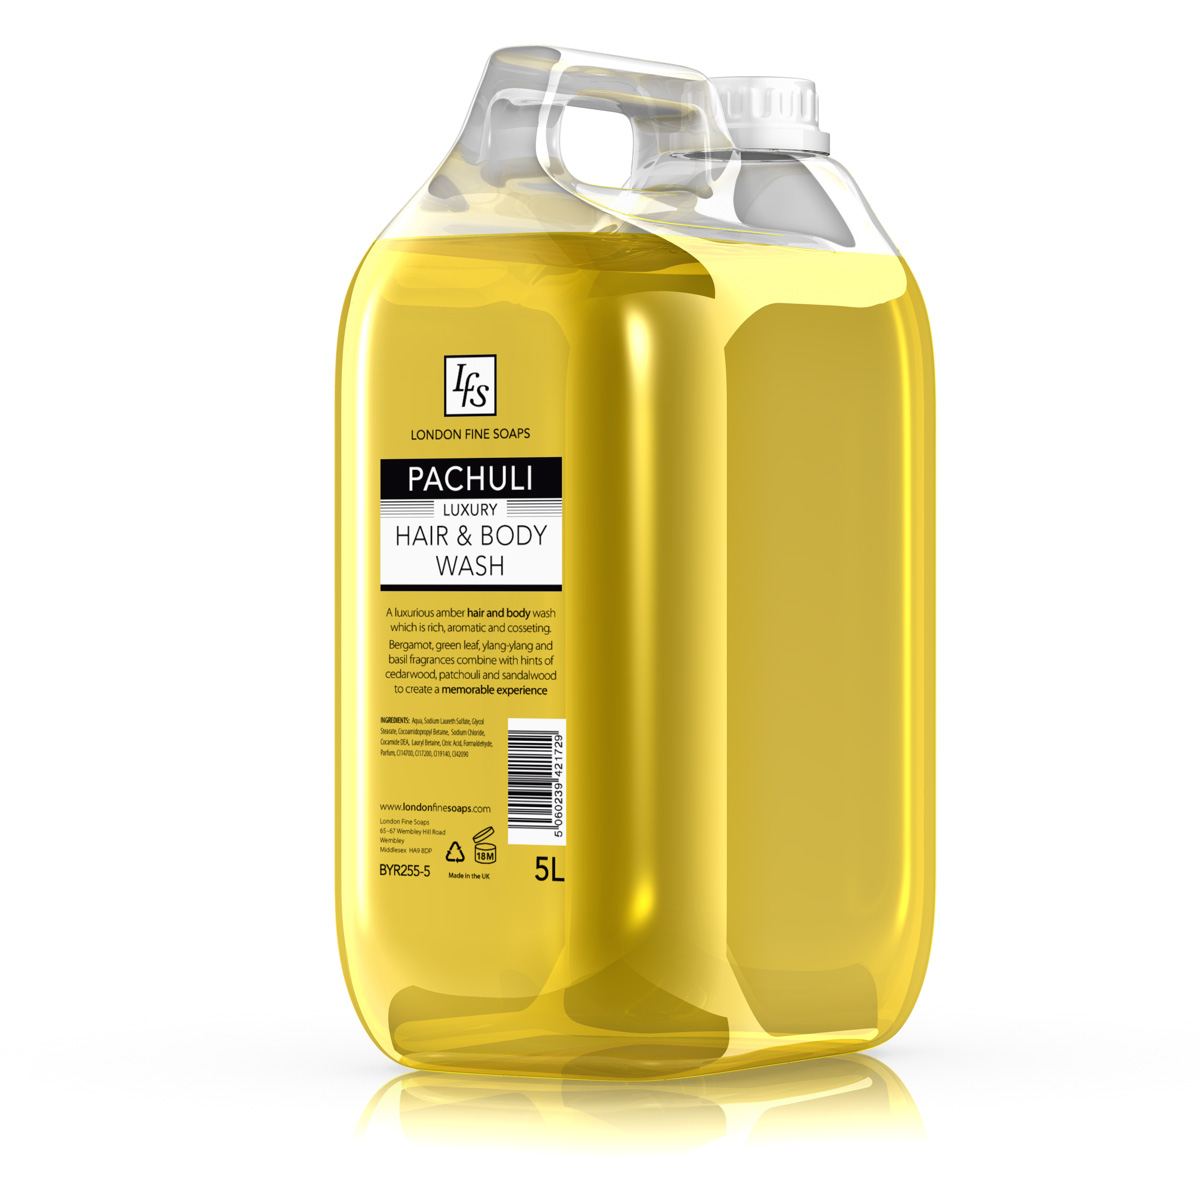 Pachulu Luxury Hair & Body Wash.png